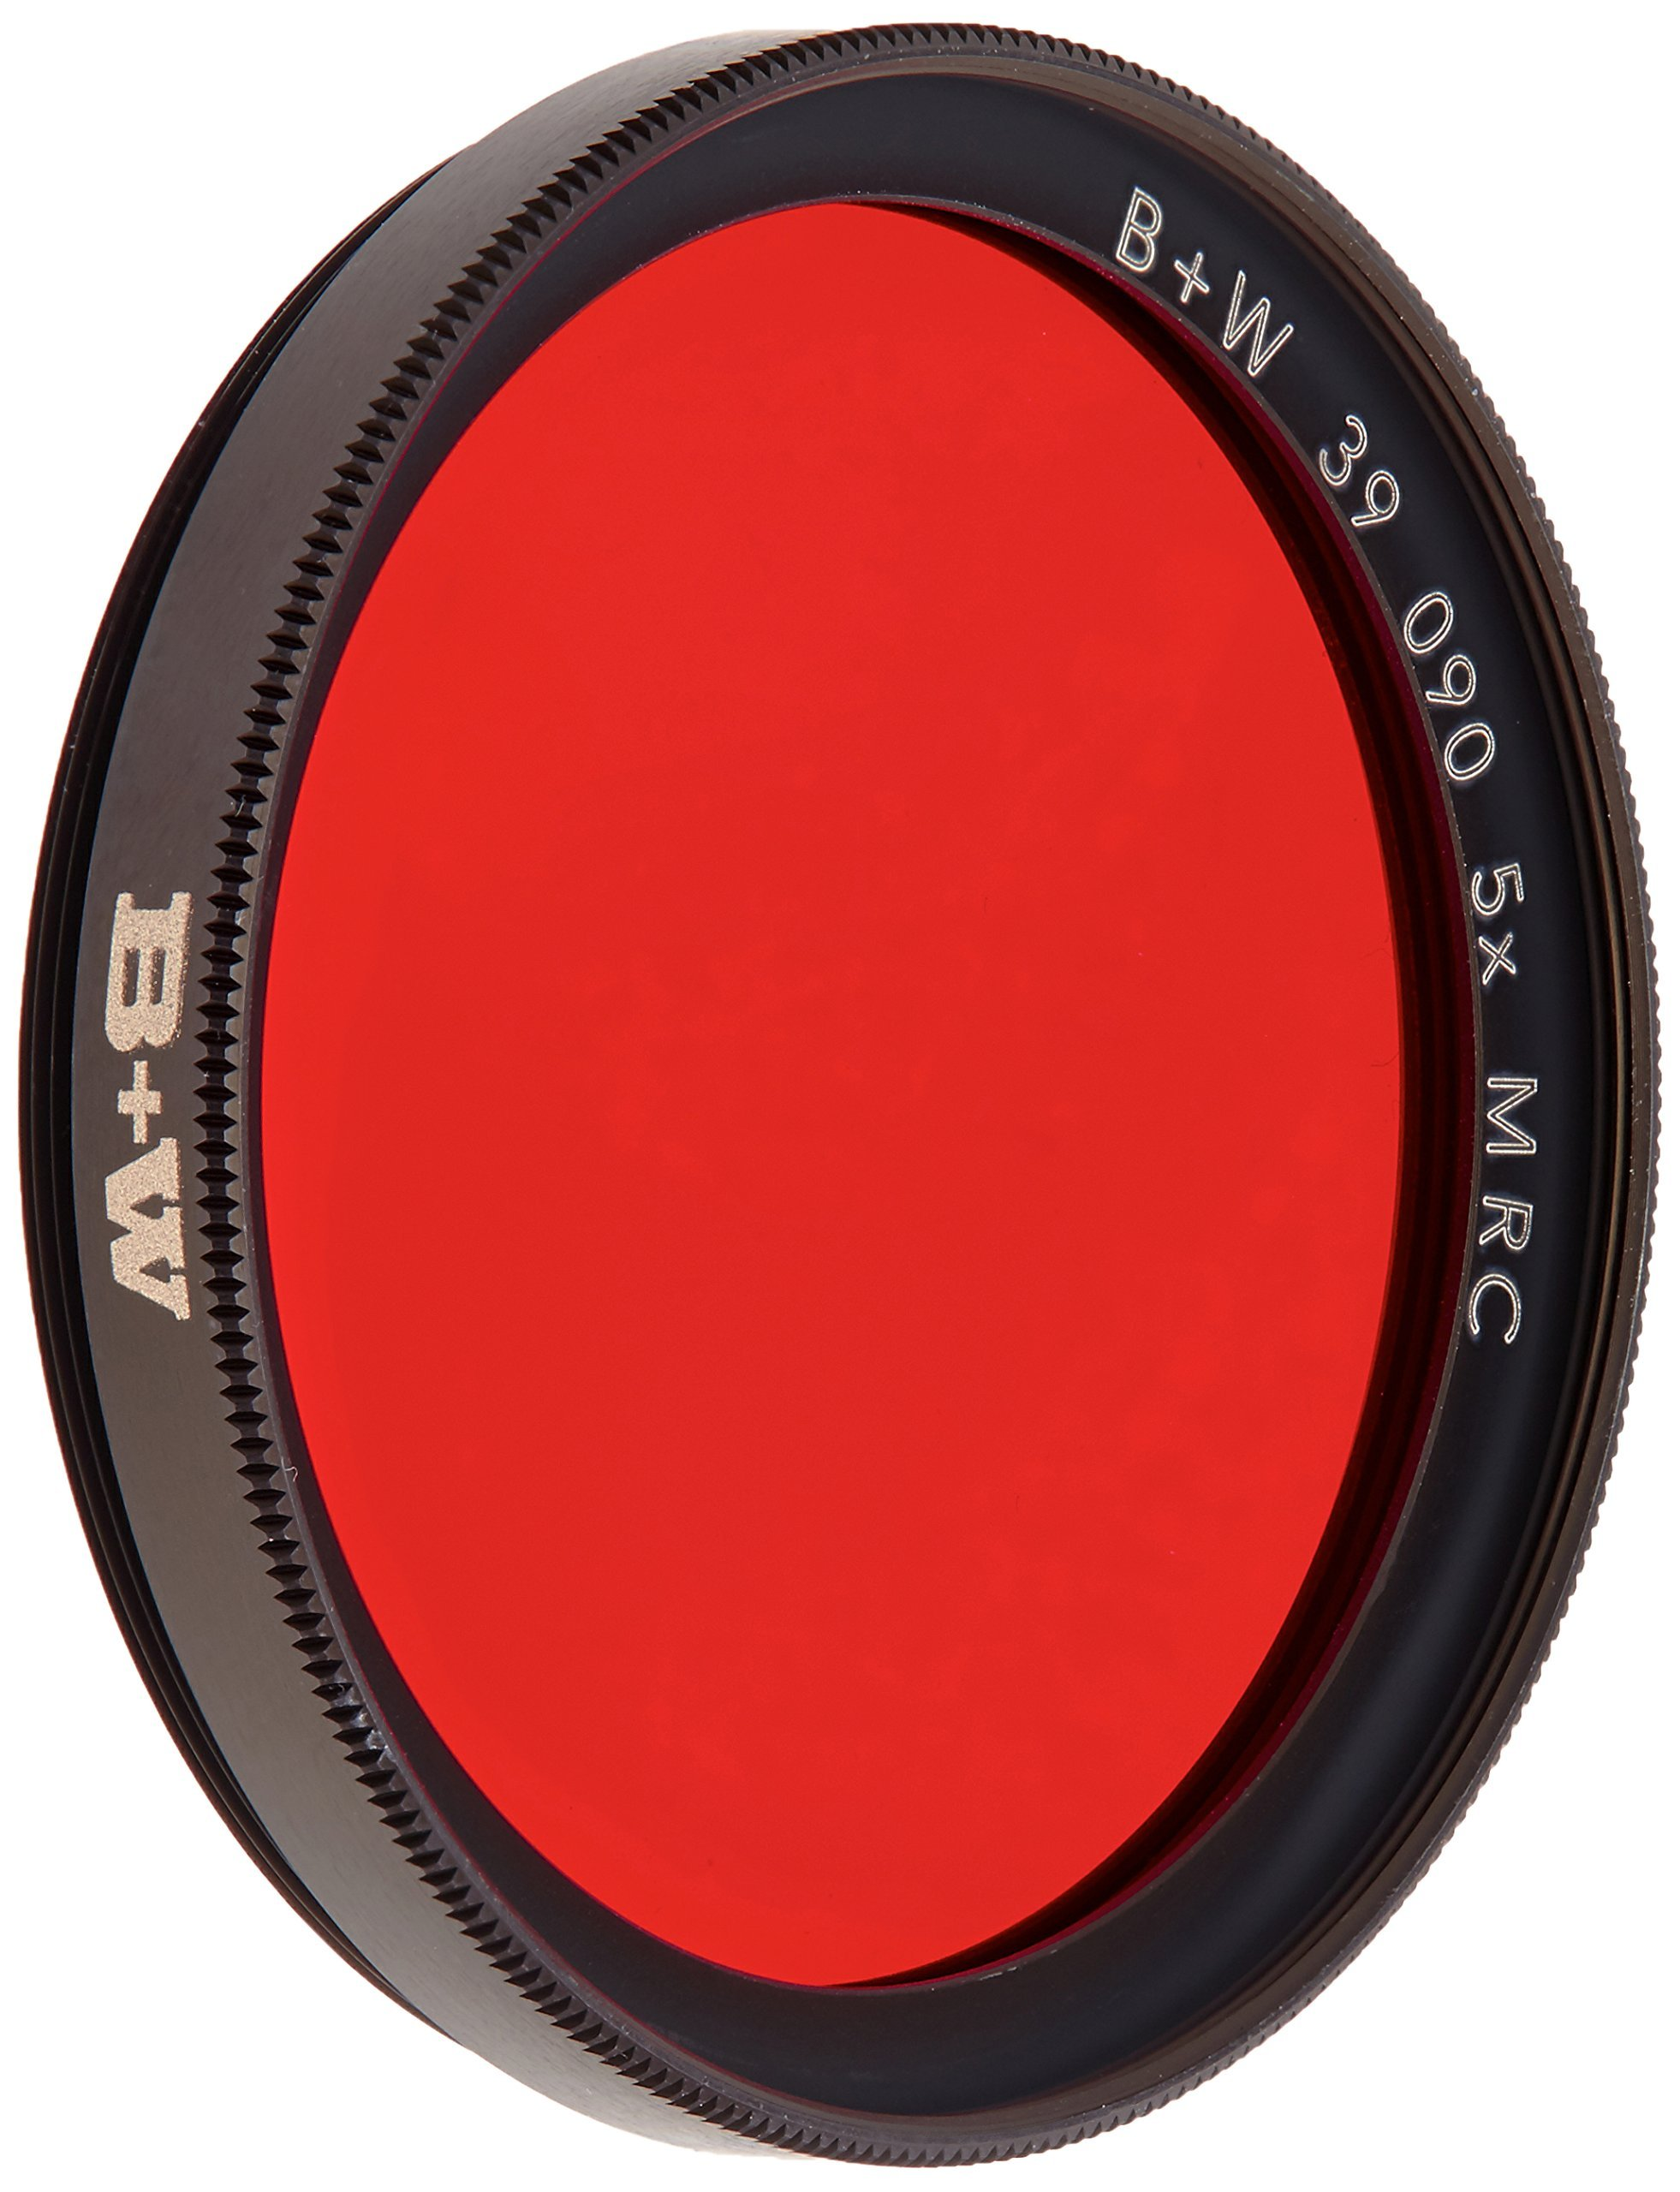 B+W 39mm Light Red Camera Lens Contrast Filter with Multi Resistant Coating (090M) by B+W